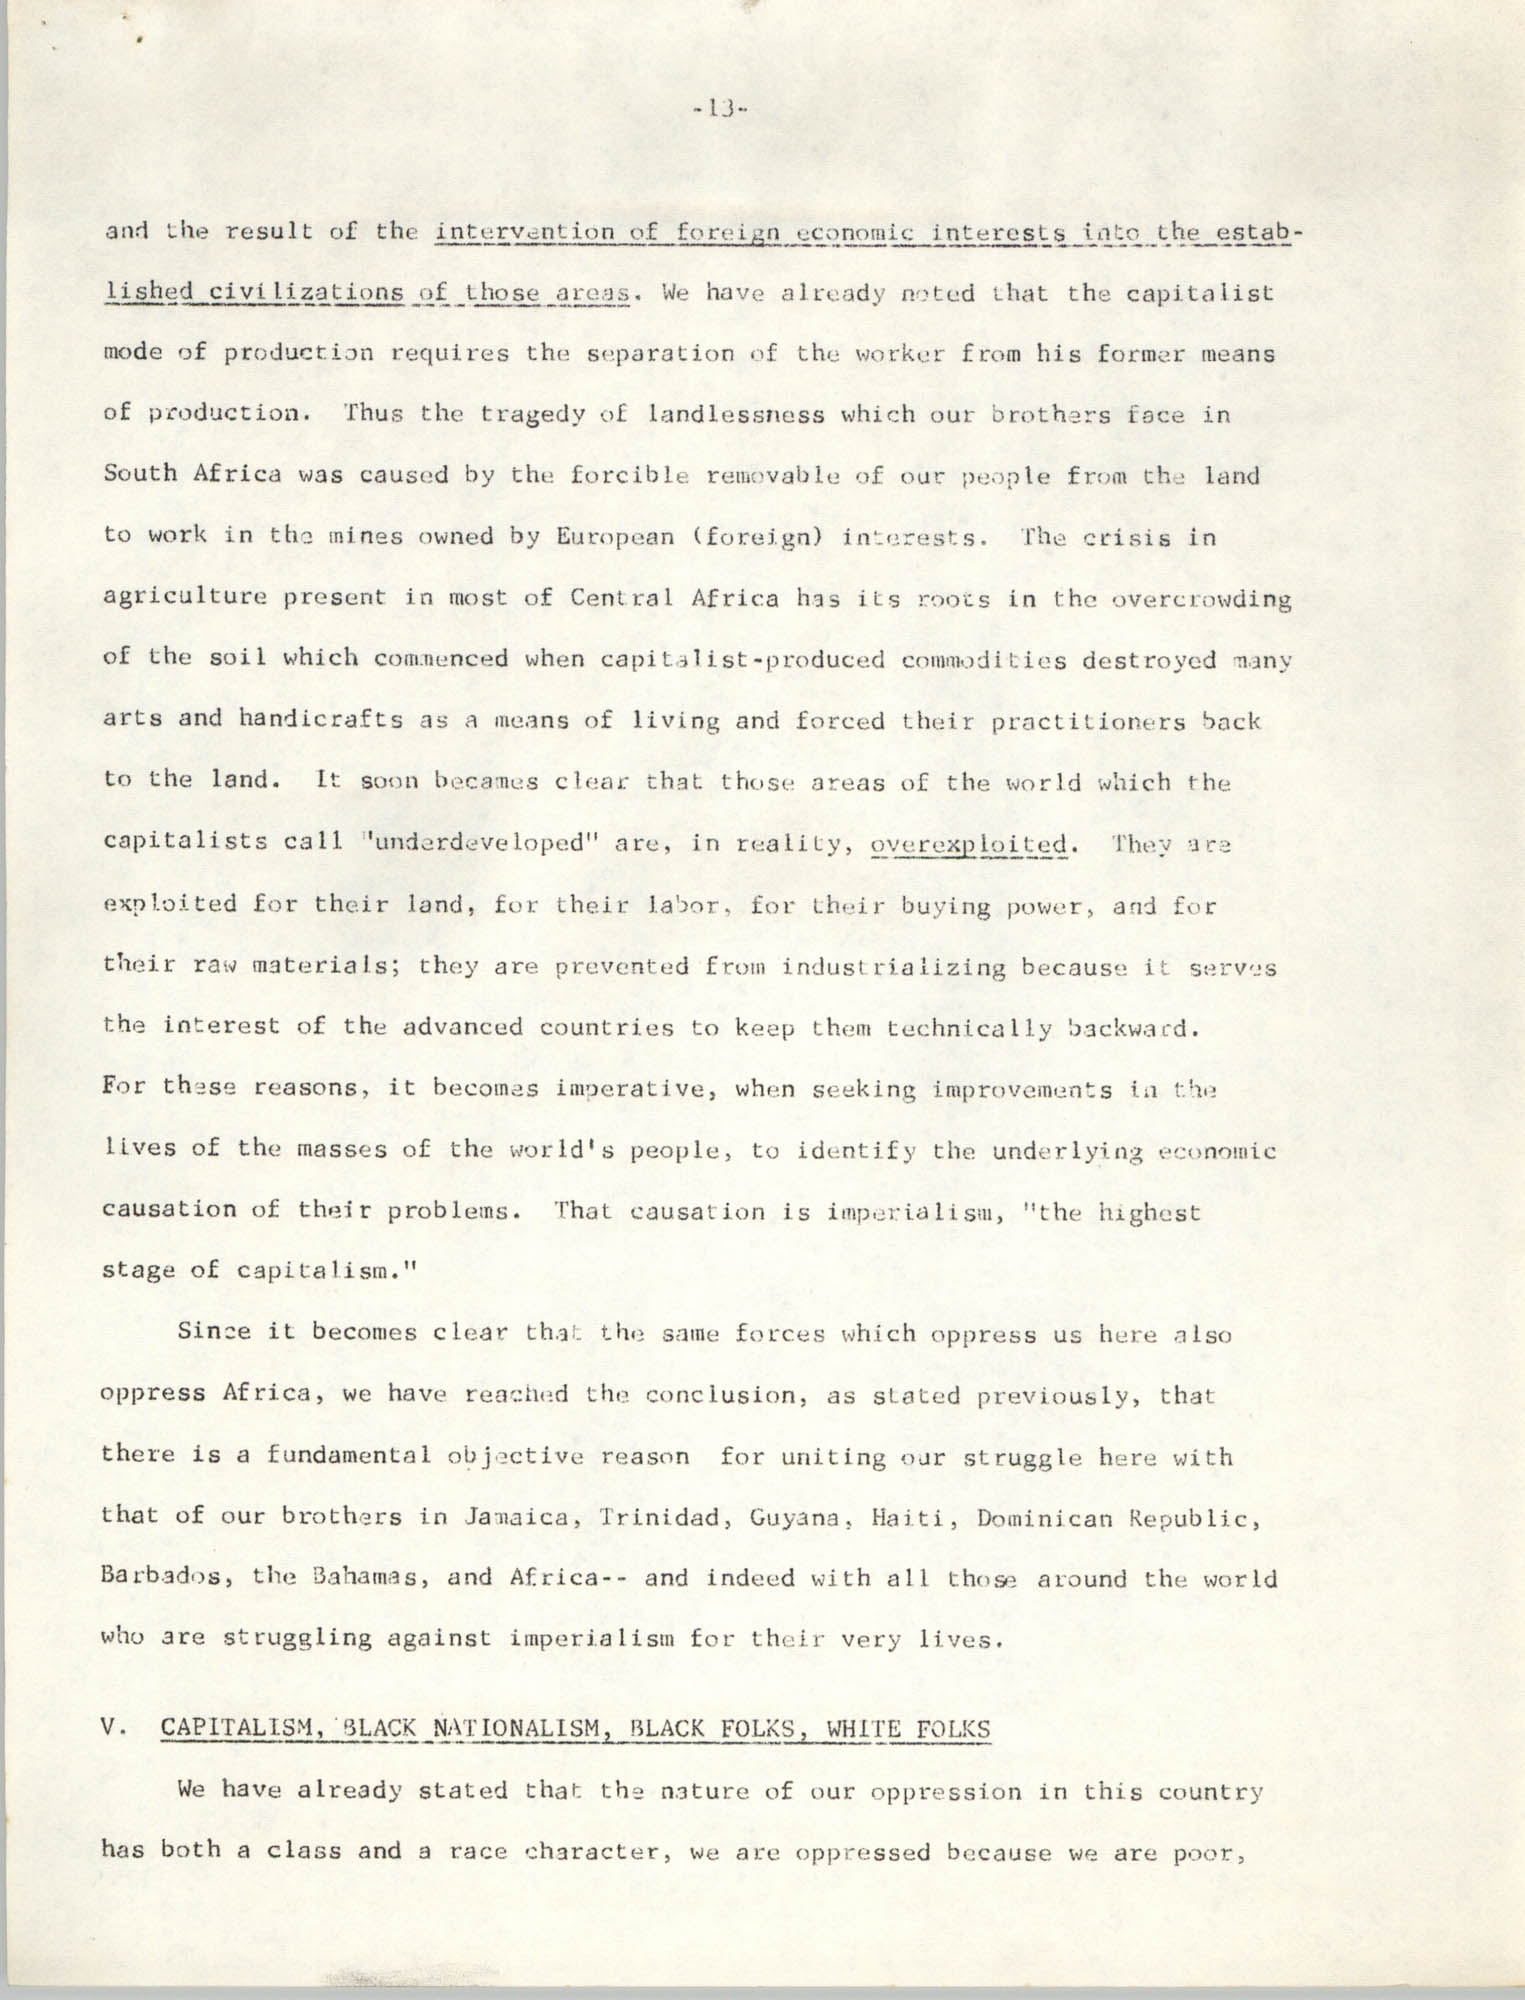 Student Organization for Black Unity Ideological Paper, Page 13